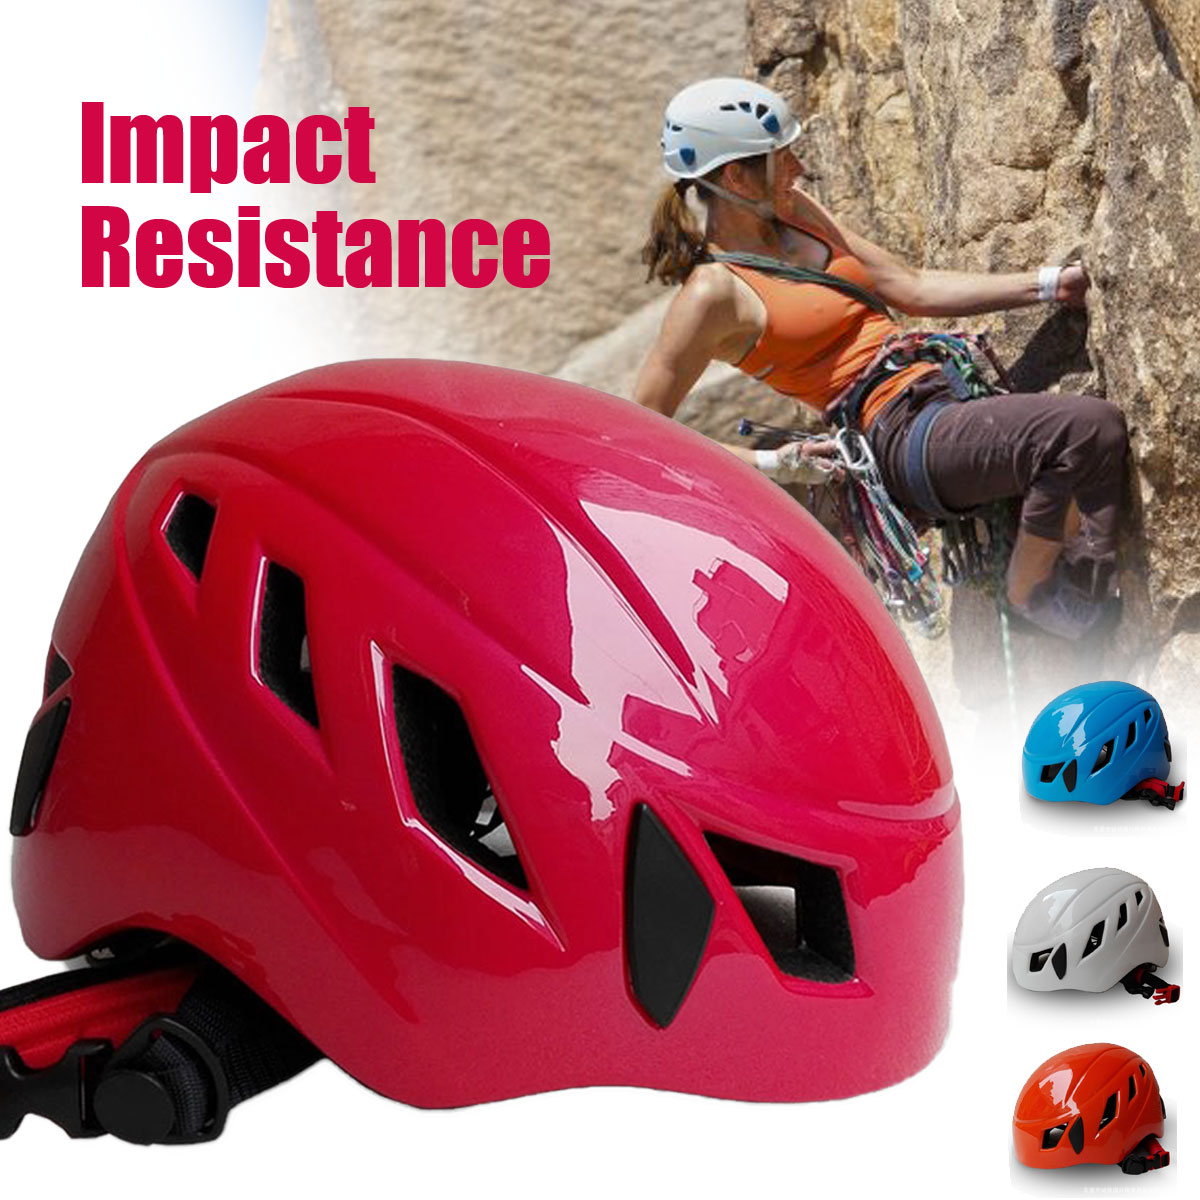 Safurance Outdoor Unisex Climbing Safety Helmet Hard Hat Construction Work Riot Helmet Rescue Construction Work Helmet лонгслив ruxara